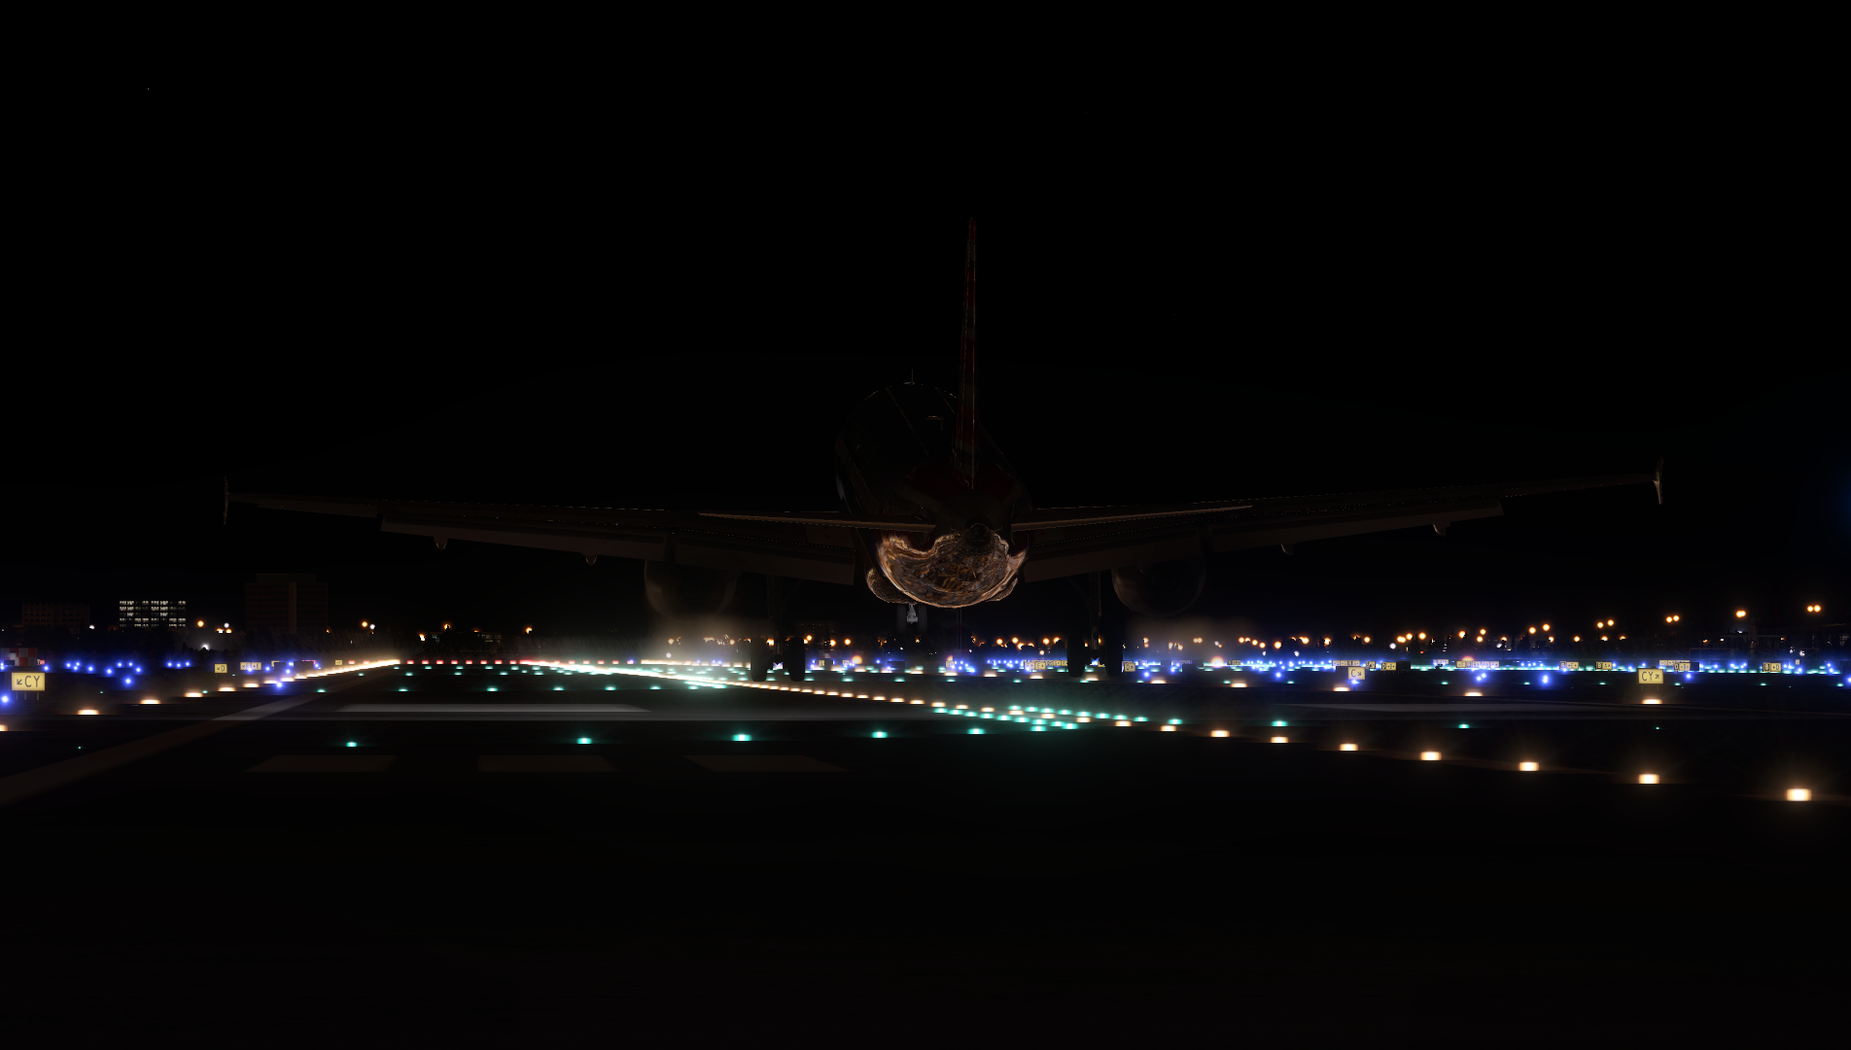 X-Plane Screenshot 2019.02.24 - 18.44.07.58.png